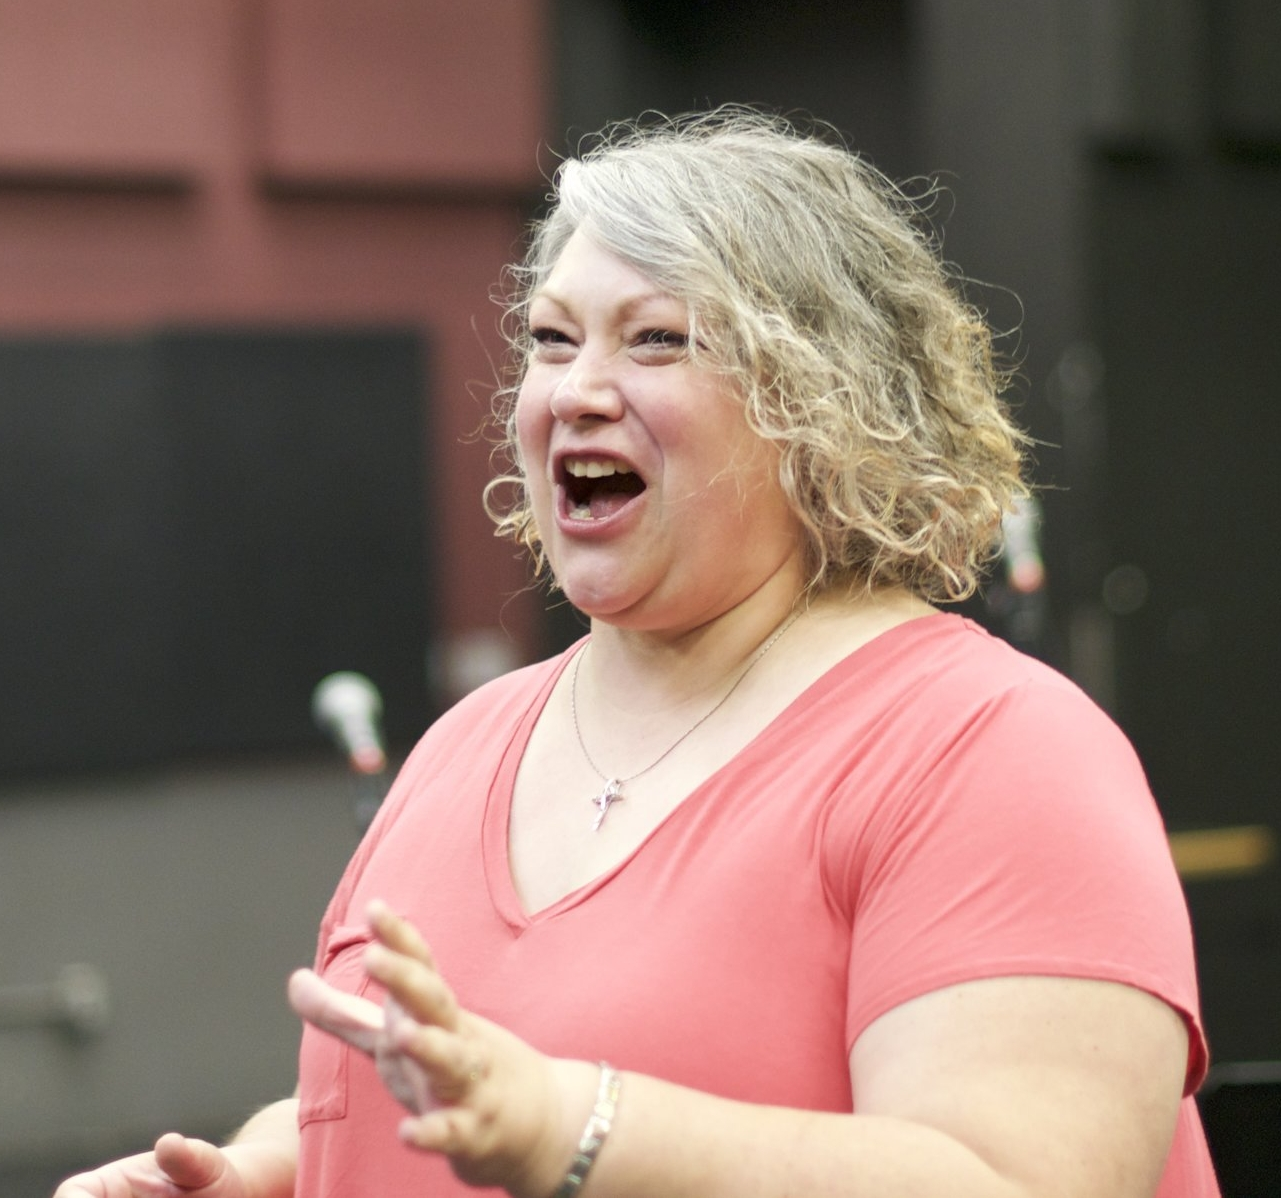 Alexis Hamilton from Portland Opera will be doing one-on-one vocal coaching with students cast in lead roles. Photo credit: Friderike Heuer.